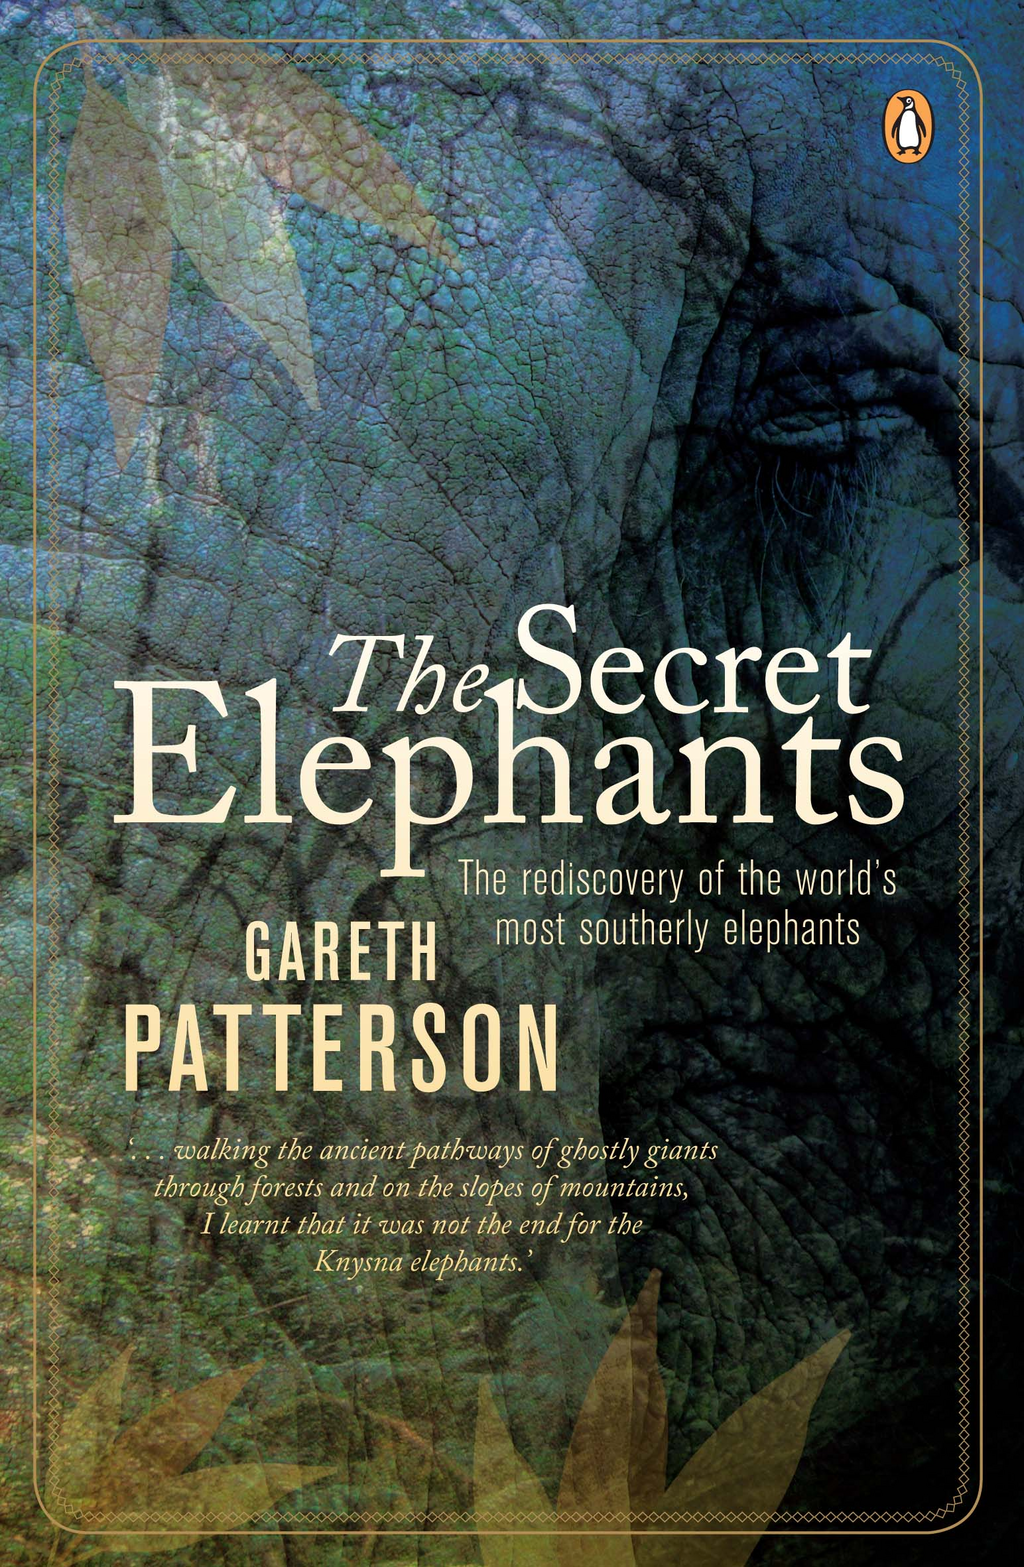 The Secret Elephants The rediscovery of the world's most southerly elephants